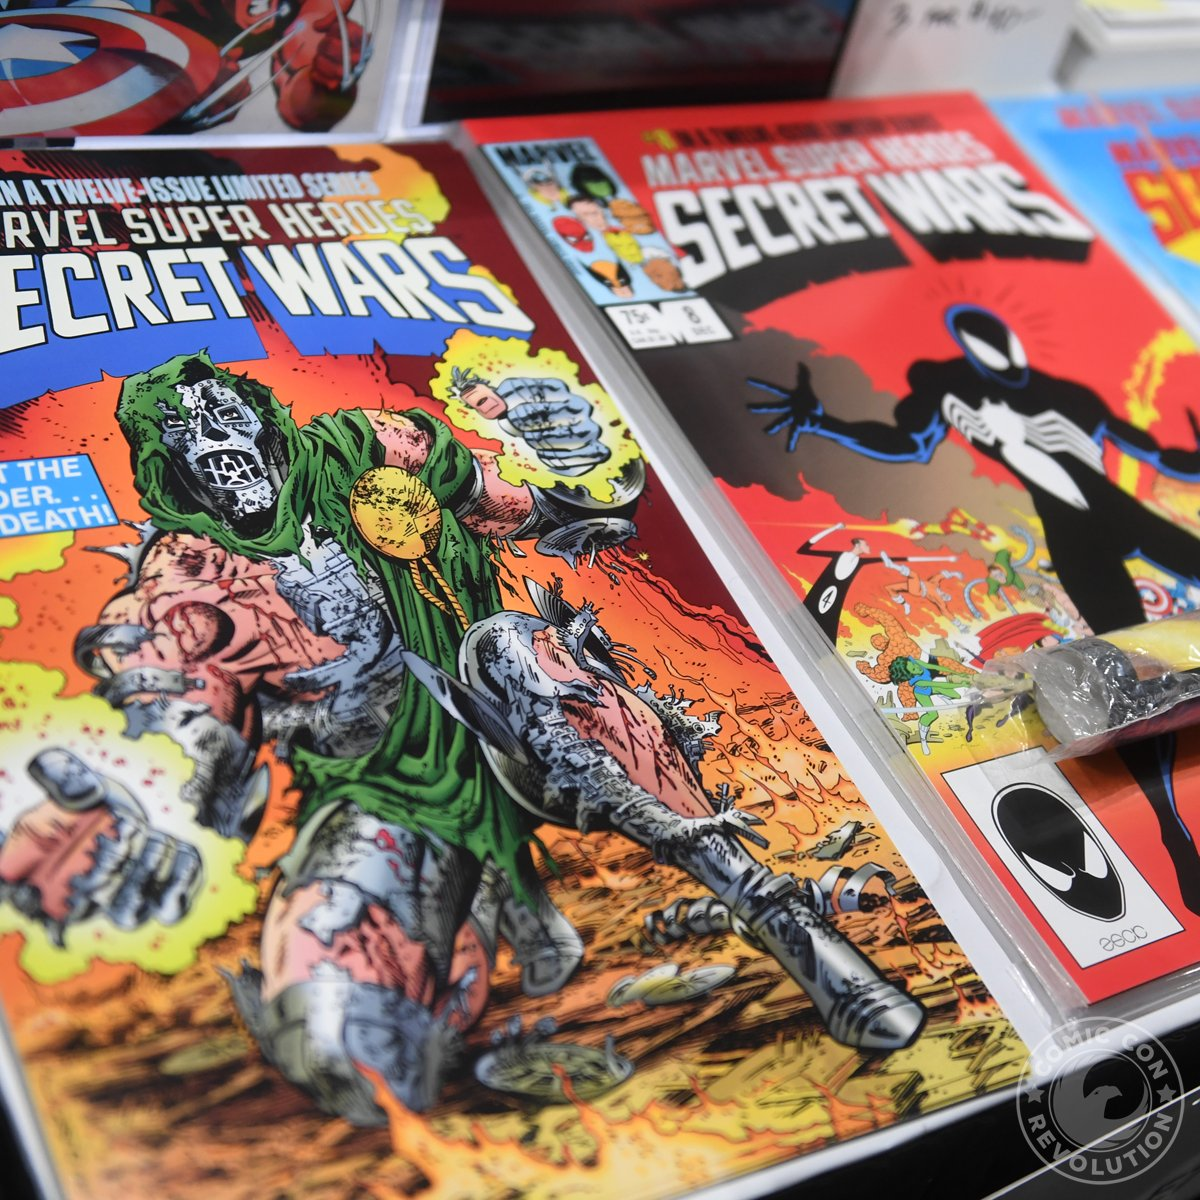 Gonna read some comics today...  #comicbooks #comiccon #ccront https://t.co/RpiJLcKH0m